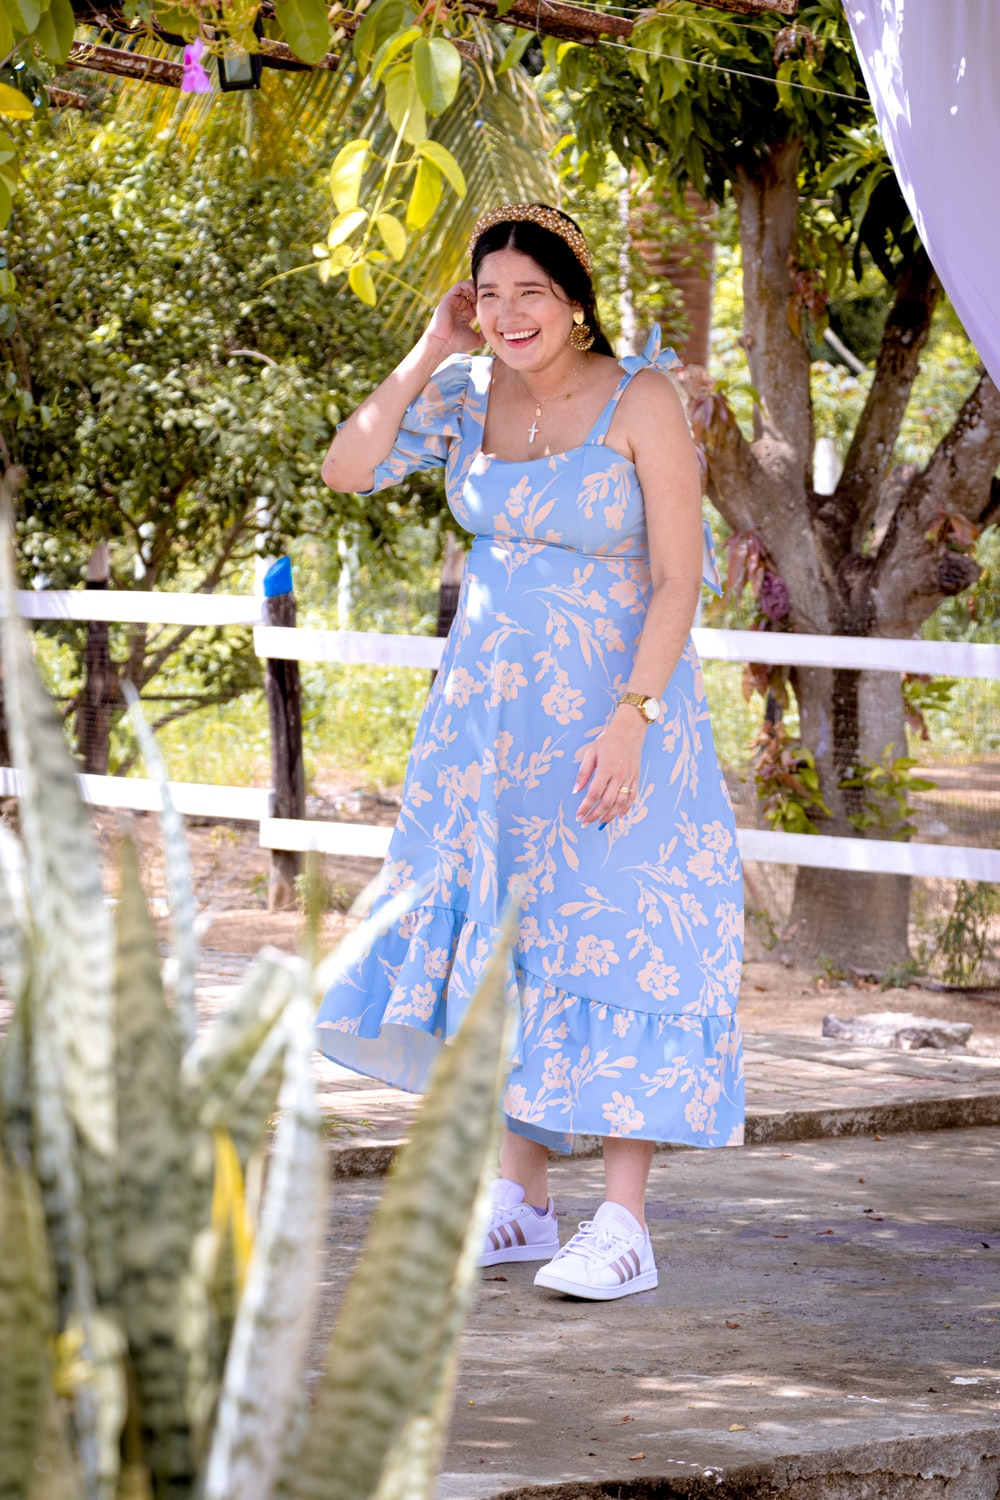 woman in blue and white floral sleeveless dress standing on wooden bridge during daytime